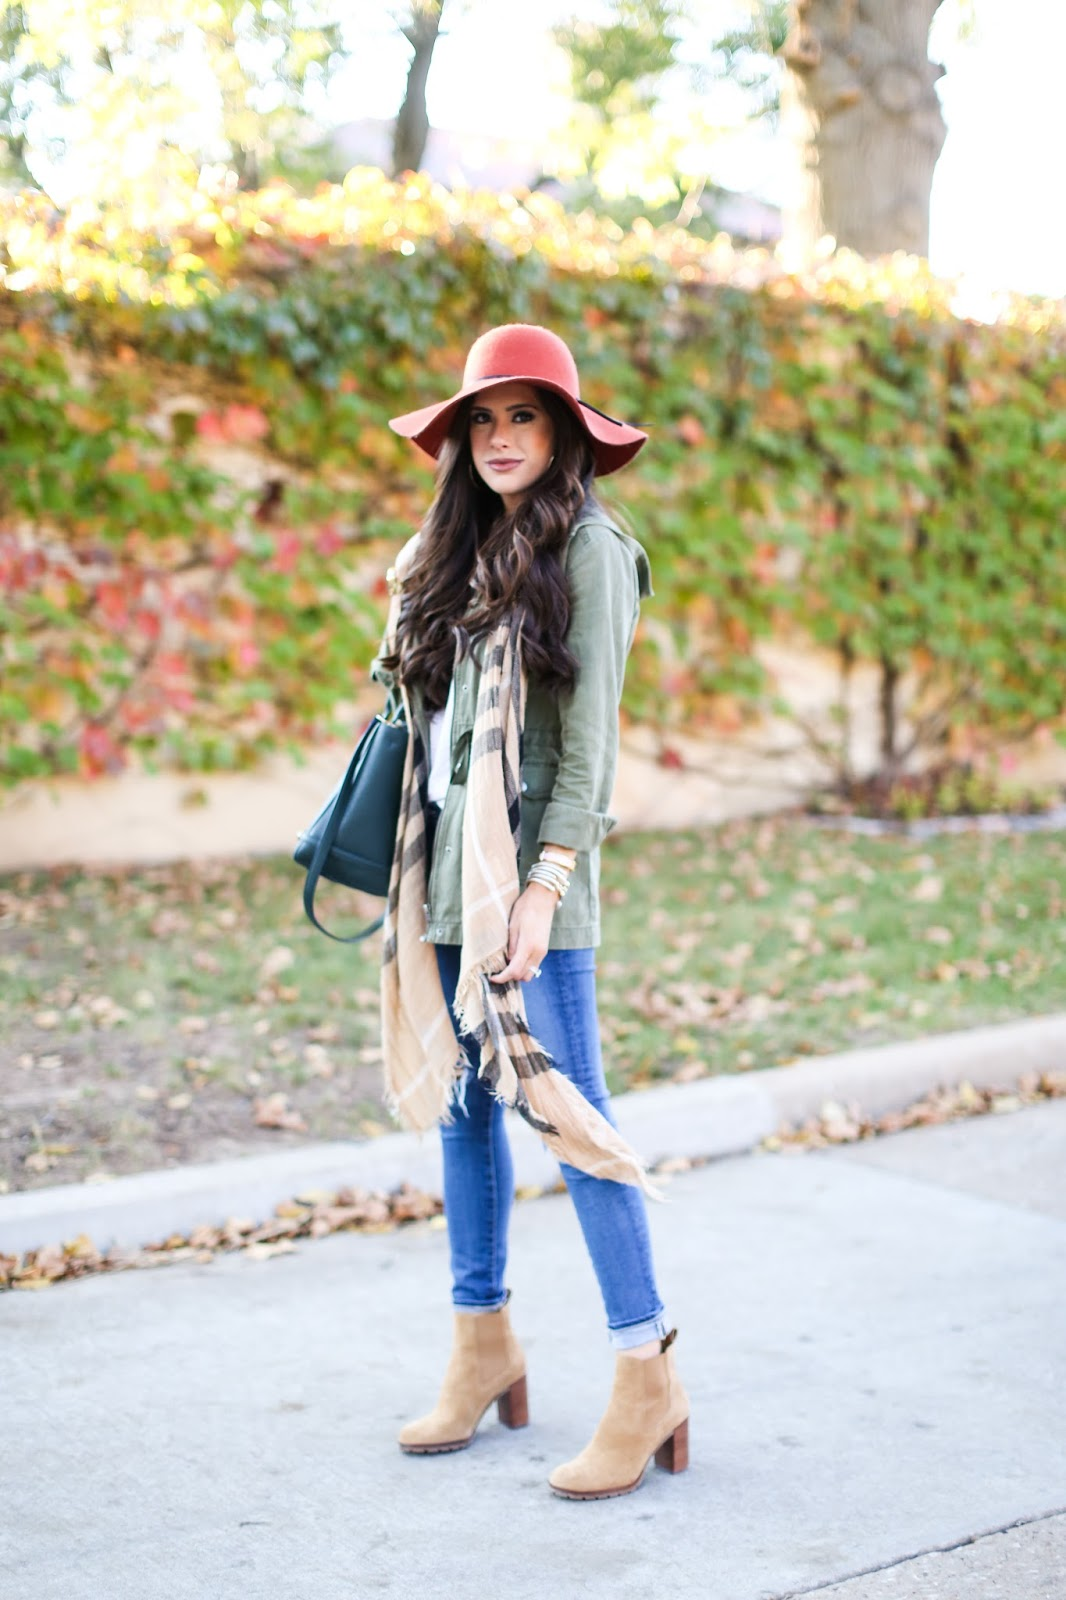 fall outfit idea, pinterest fall ootd, how to style a utility jacket, best white v neck tee, tory burch tote dark green, tory burch booties, AG jeans ripped knees, AG jeans reviews, Emily gemma, the sweetest thing, michael hors watch with black face, gold michael hors watch with black face, david yurman bracelet stack, burberry scarf dupe, burberry scarf look a like, fall outfits with booties & jacket, nordstrom floppy hats, orange floppy hat